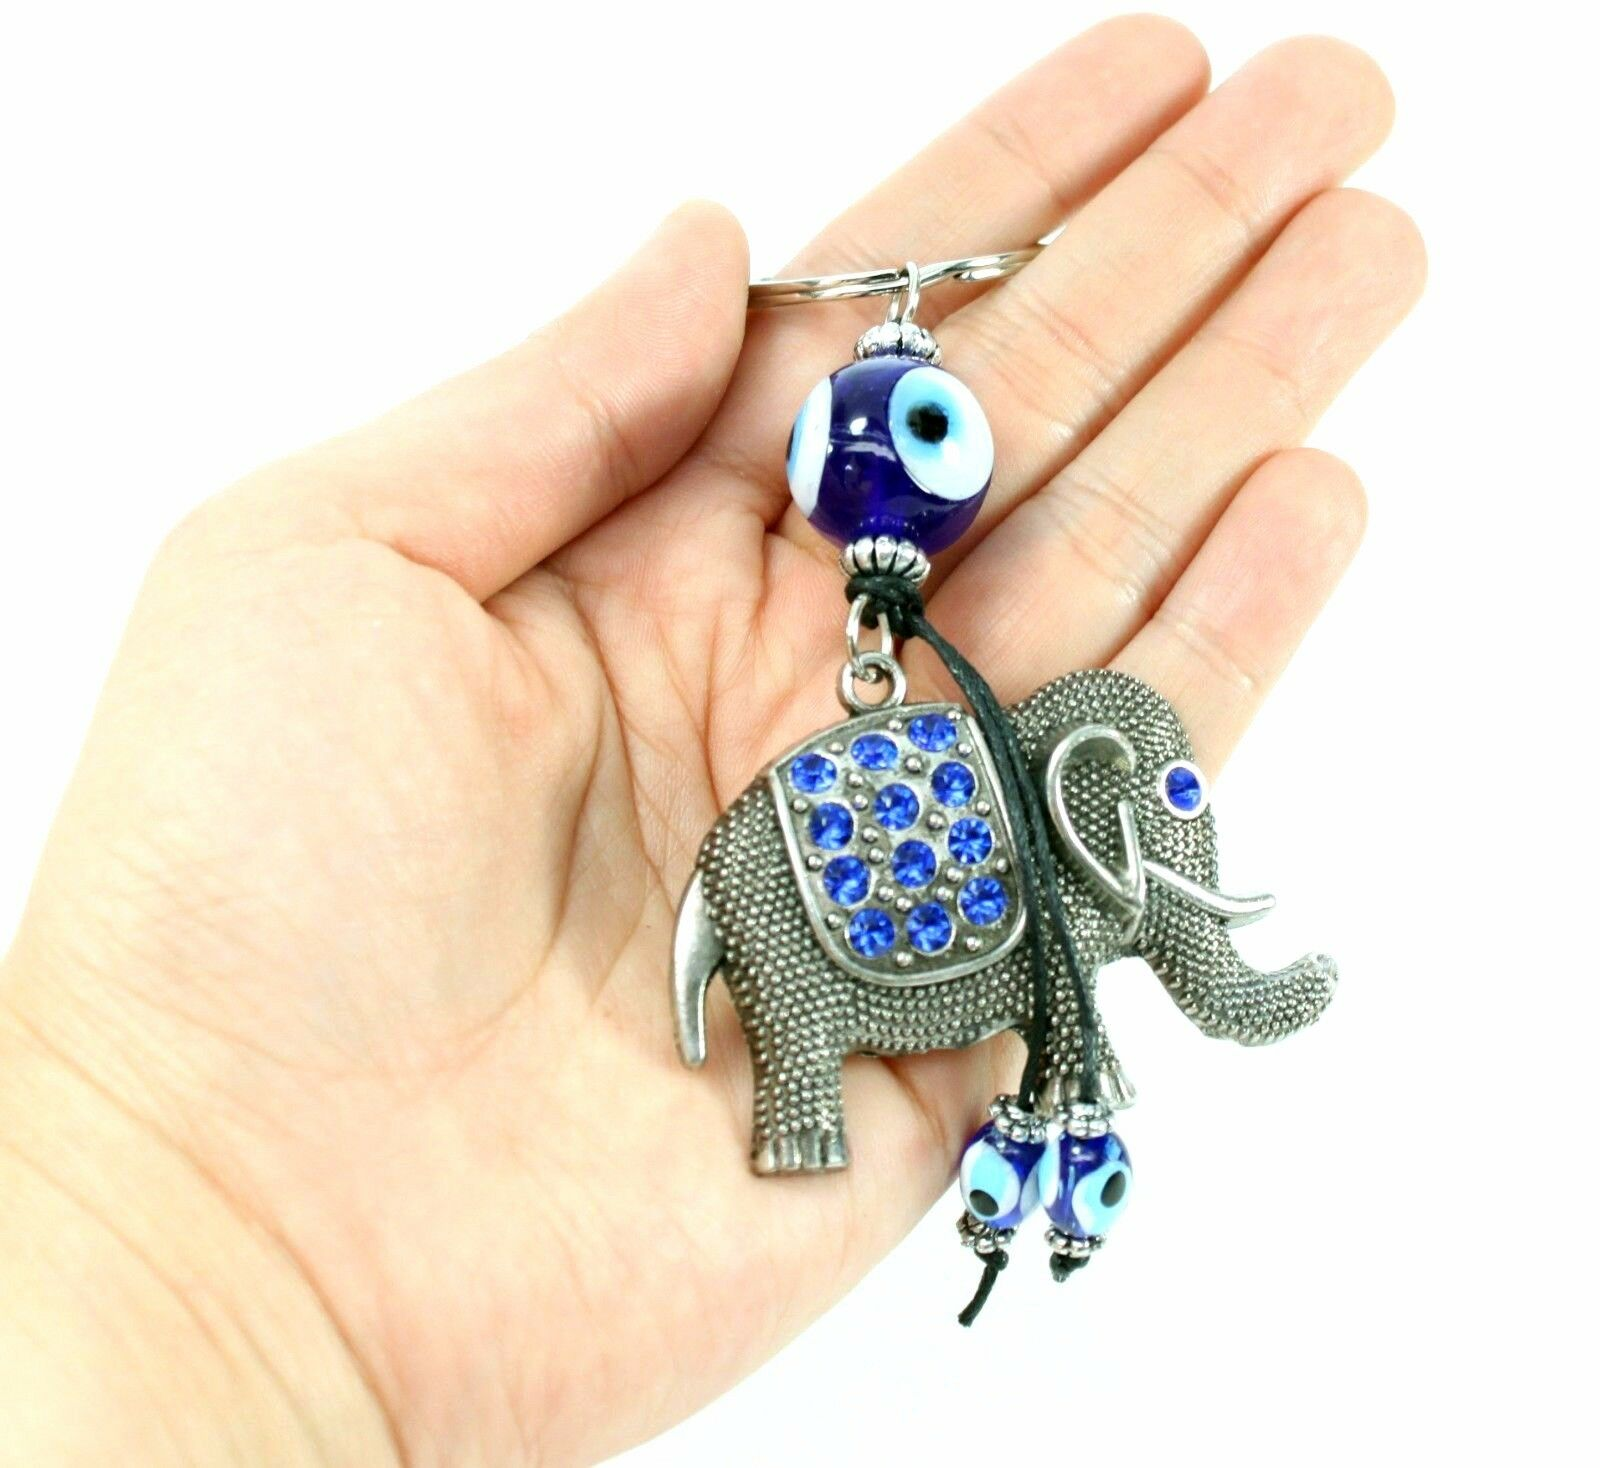 Details about Blue Evil Eye Elephant Keychain Blessing Protection Religious  Gift US Seller